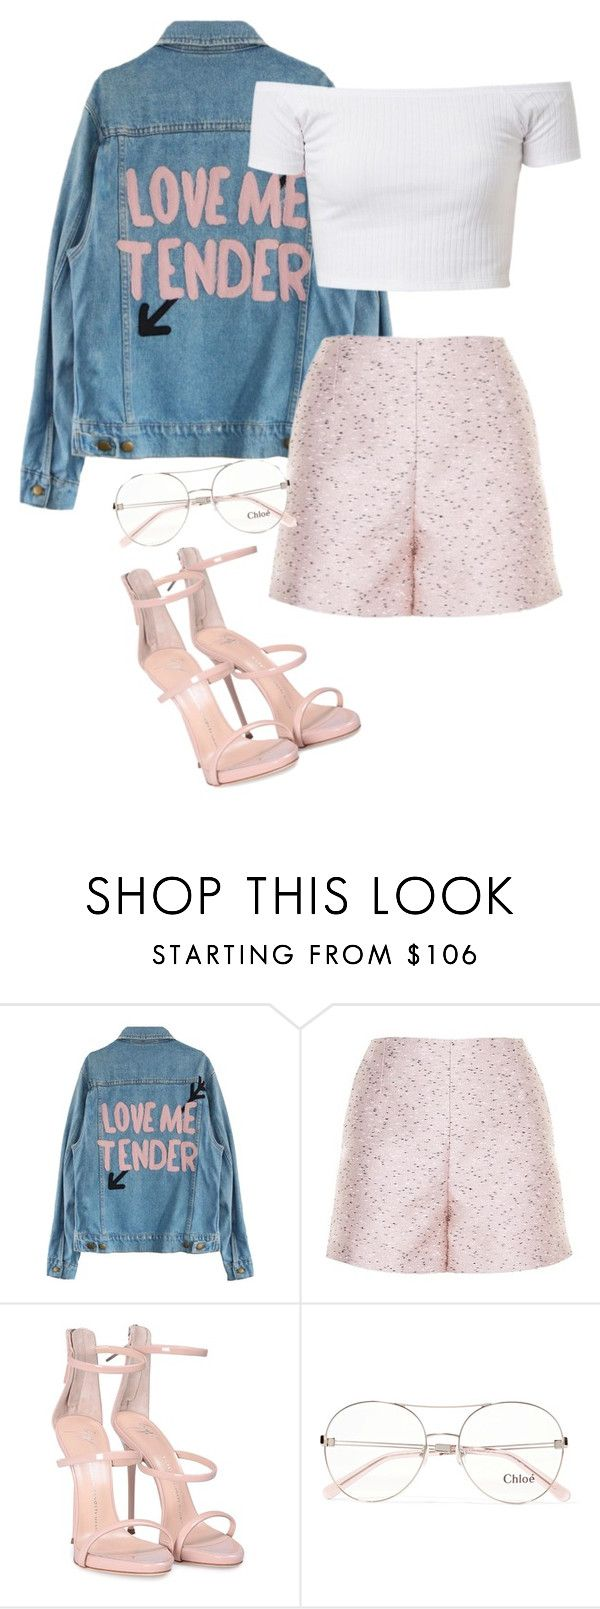 """.."" by pnrcalis ❤ liked on Polyvore featuring Balenciaga, Giuseppe Zanotti and Chloé"